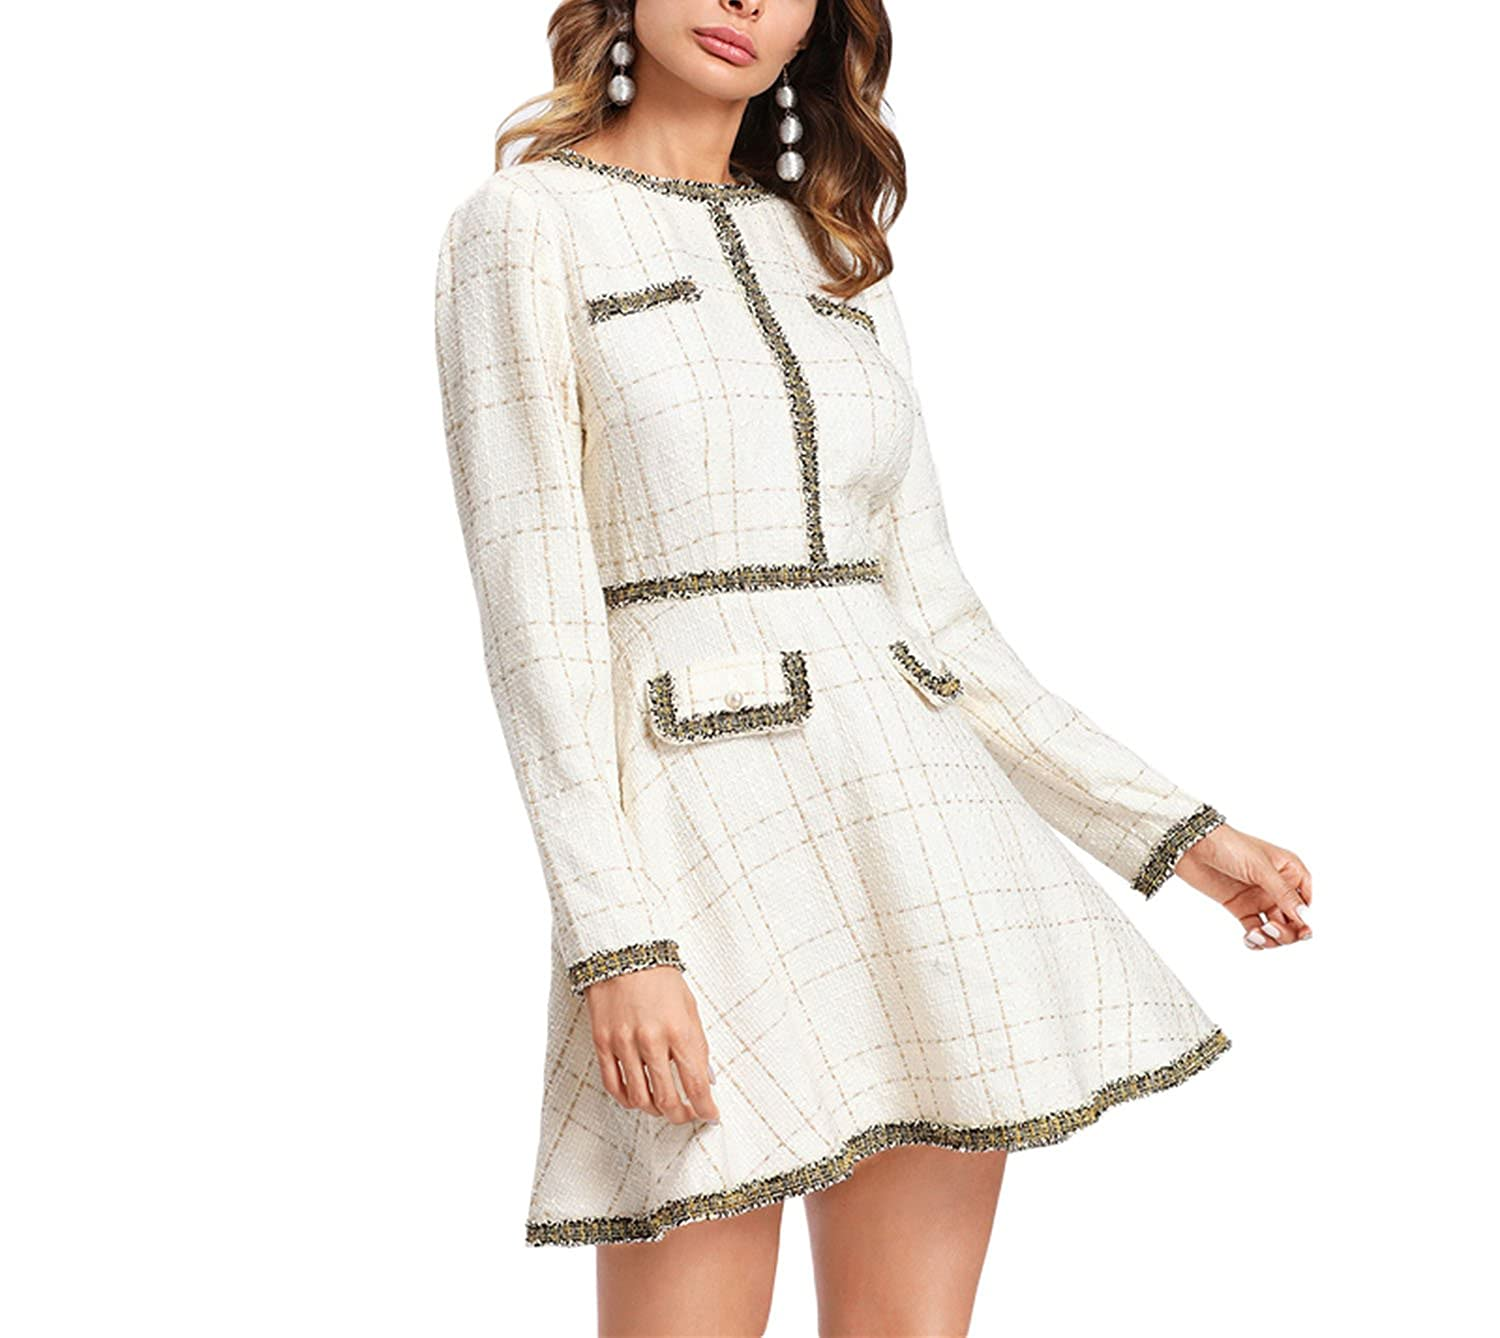 e624903d77a Trendy-Nicer Elegant Fringe and Pearl Embellished Tweed Dress Multicolor Long  Sleeve Plaid at Amazon Women's Clothing store: